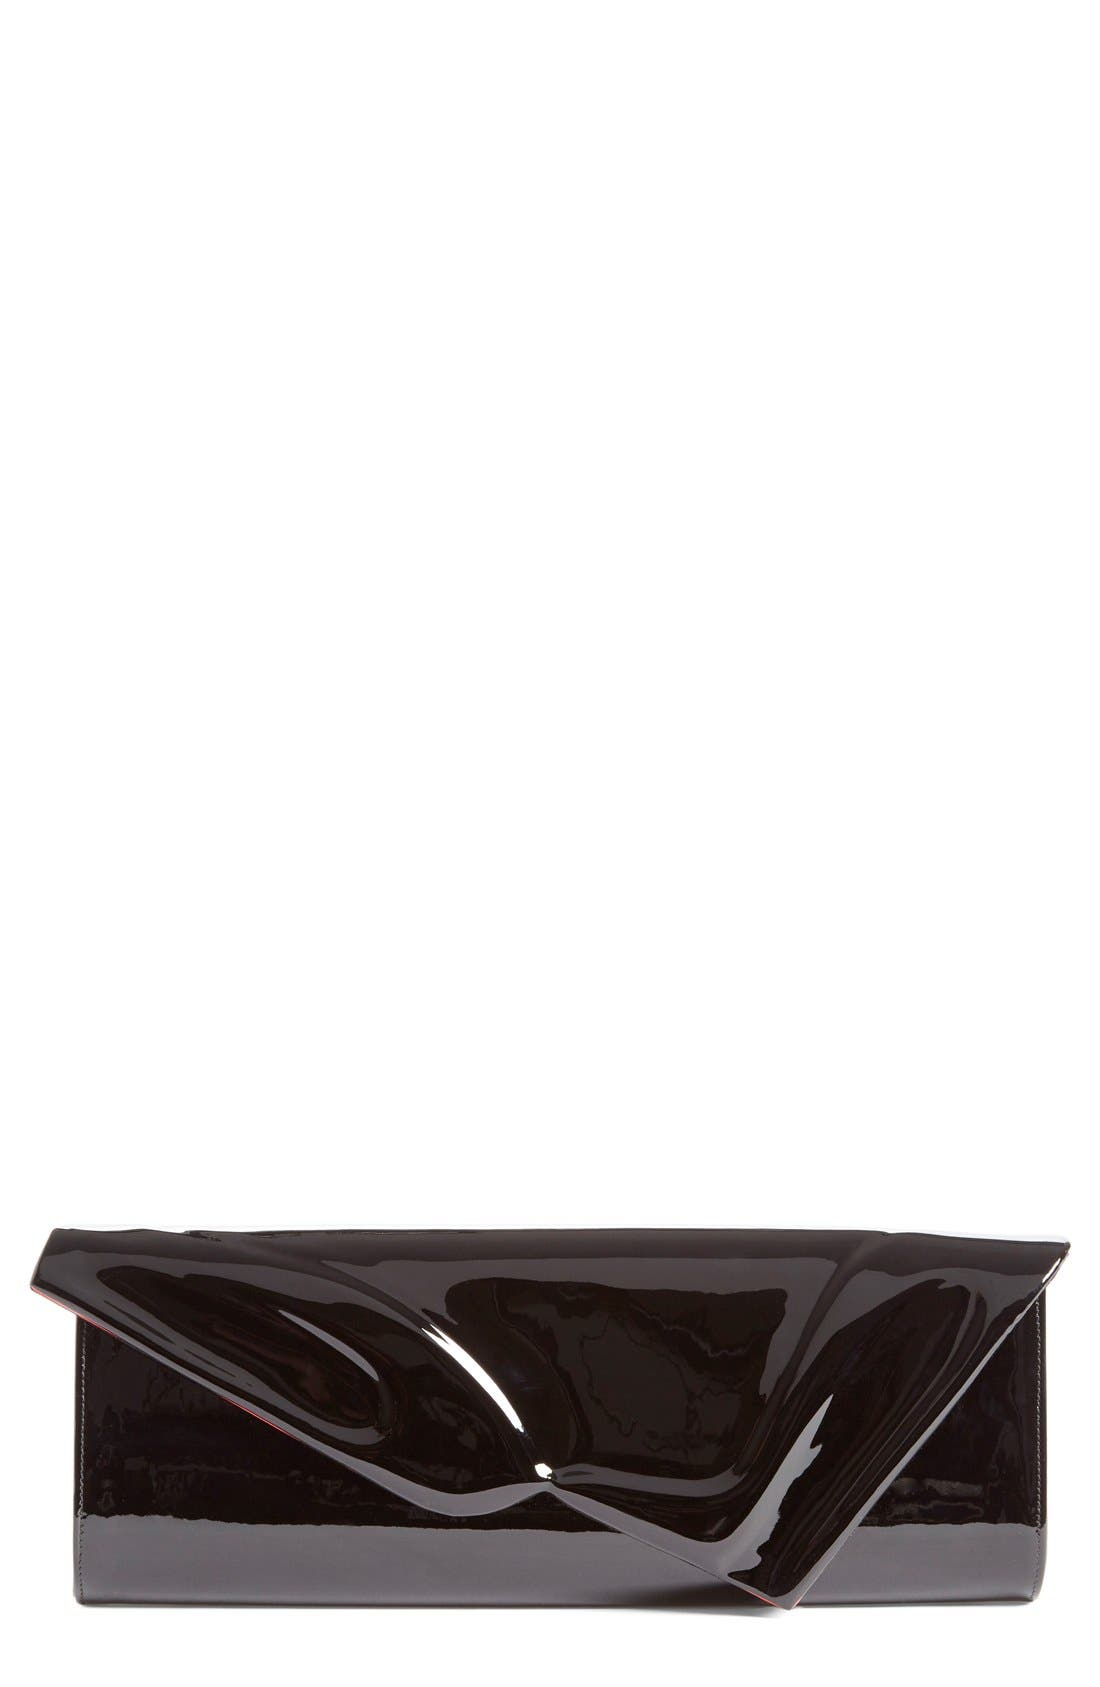 Christian Louboutin 'So Kate' Patent Leather Clutch